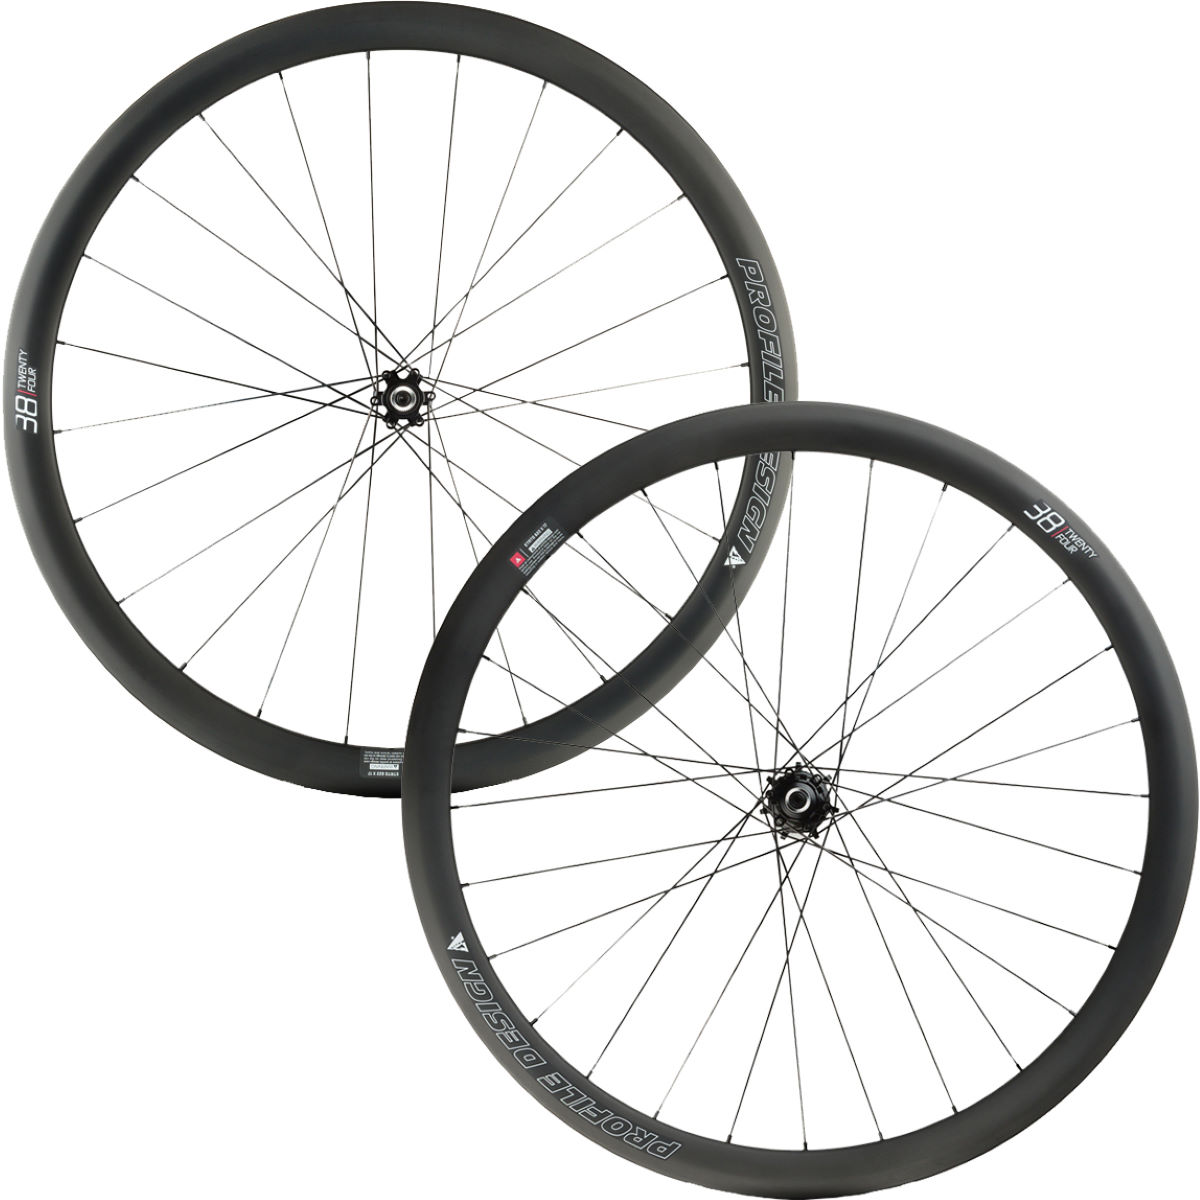 Profile Design 38 TwentyFour Full Carbon Clincher Disc Wheelset - 700c Shimano/SRAM Noir Roues performance